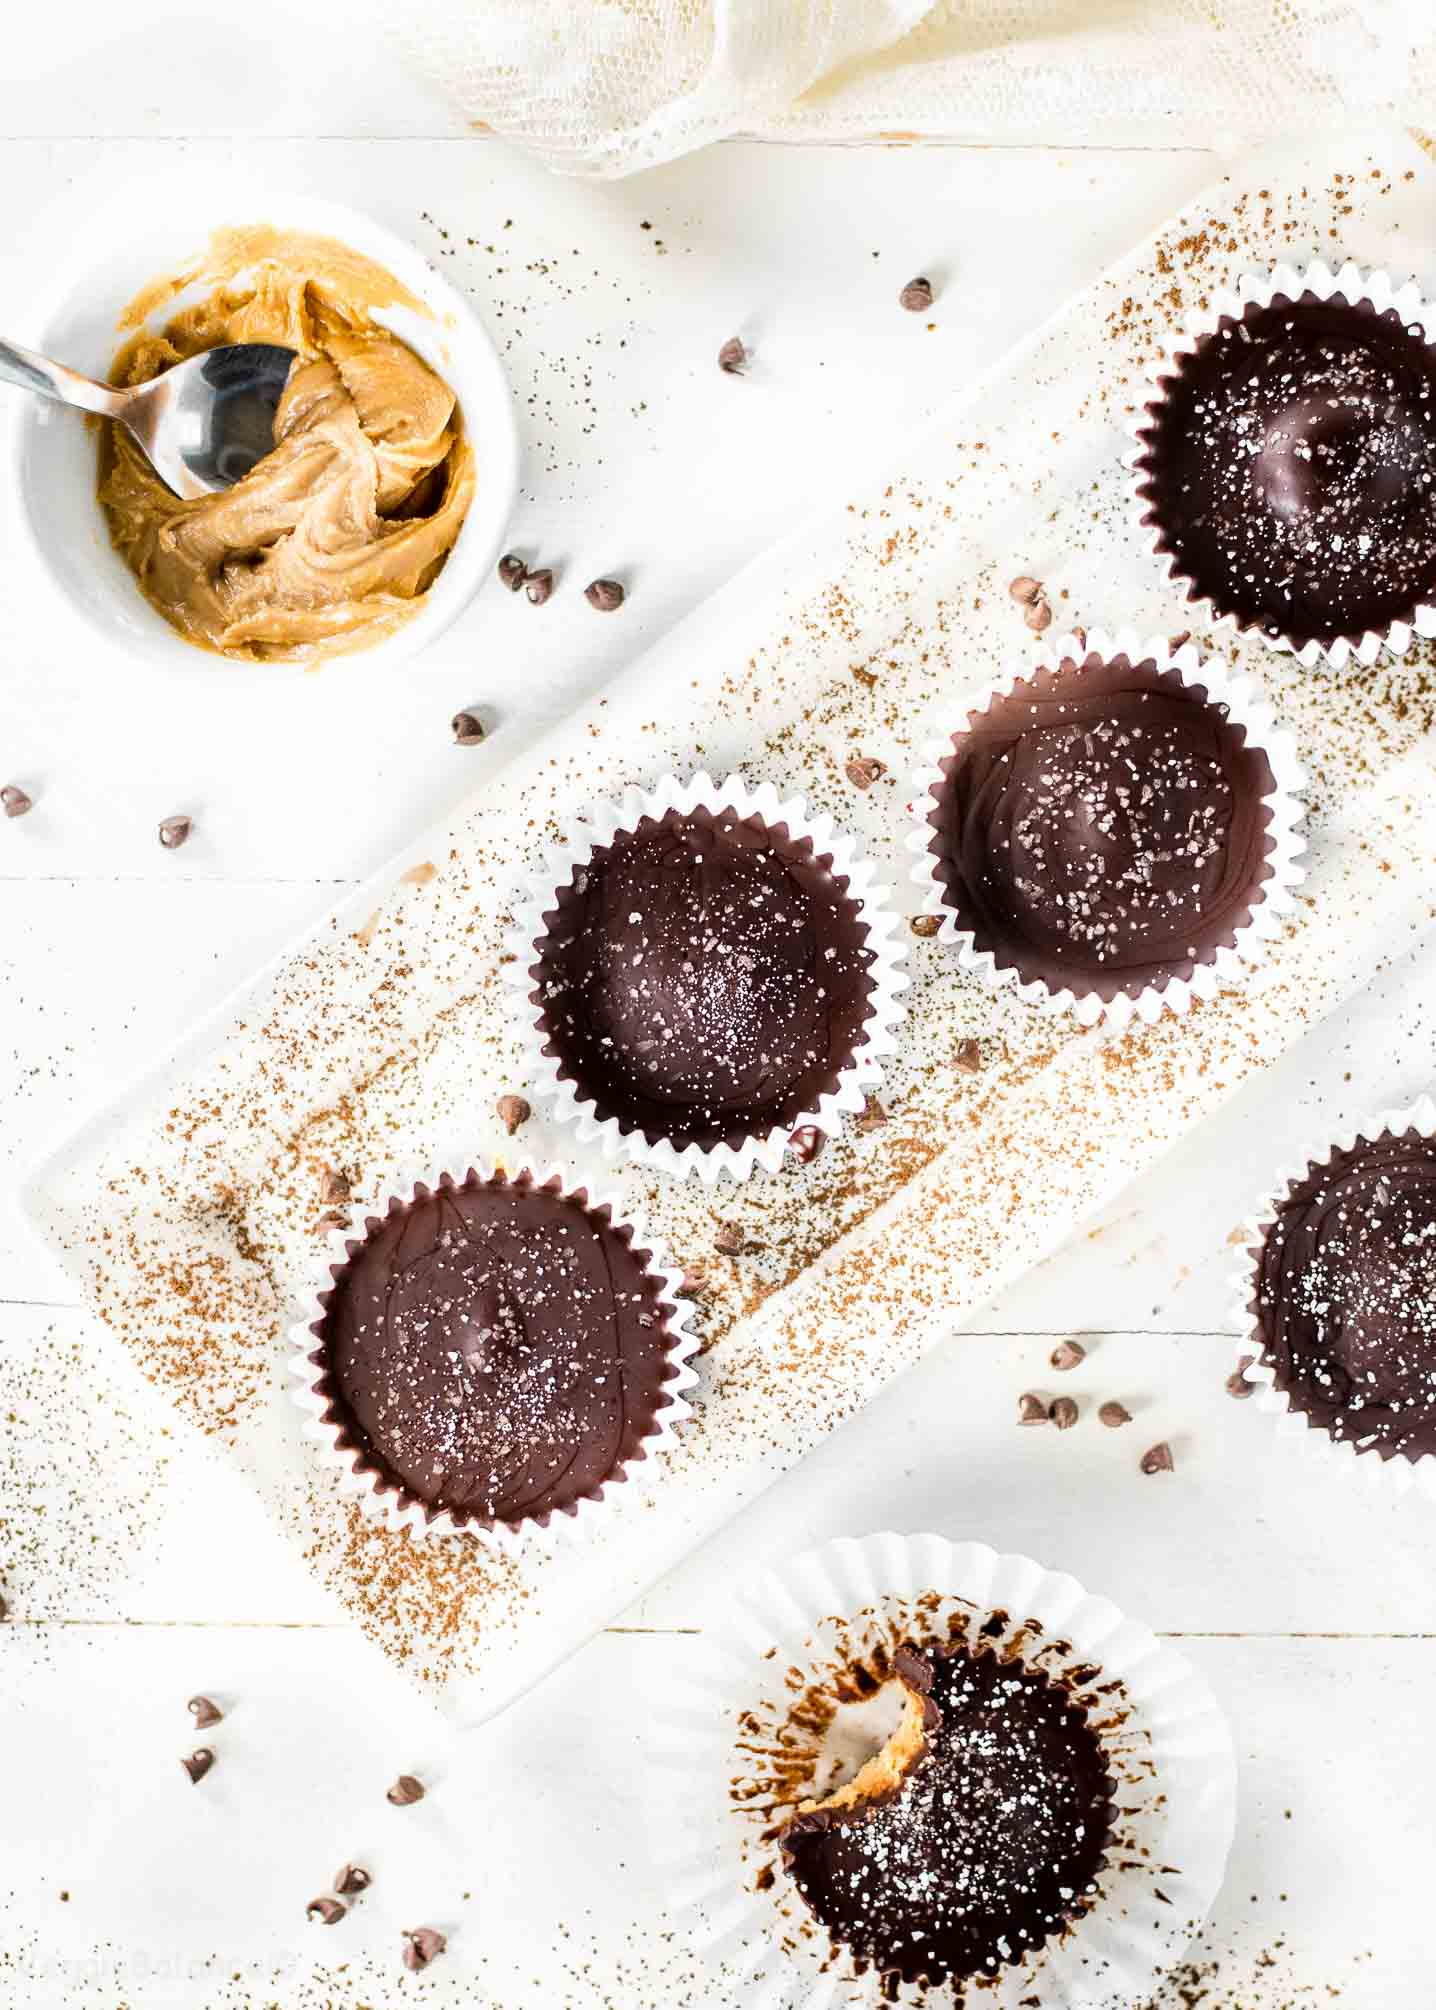 Homemade Peanut Butter Cups Overhead with Cup of Peanut Butter and Cocoa Powder